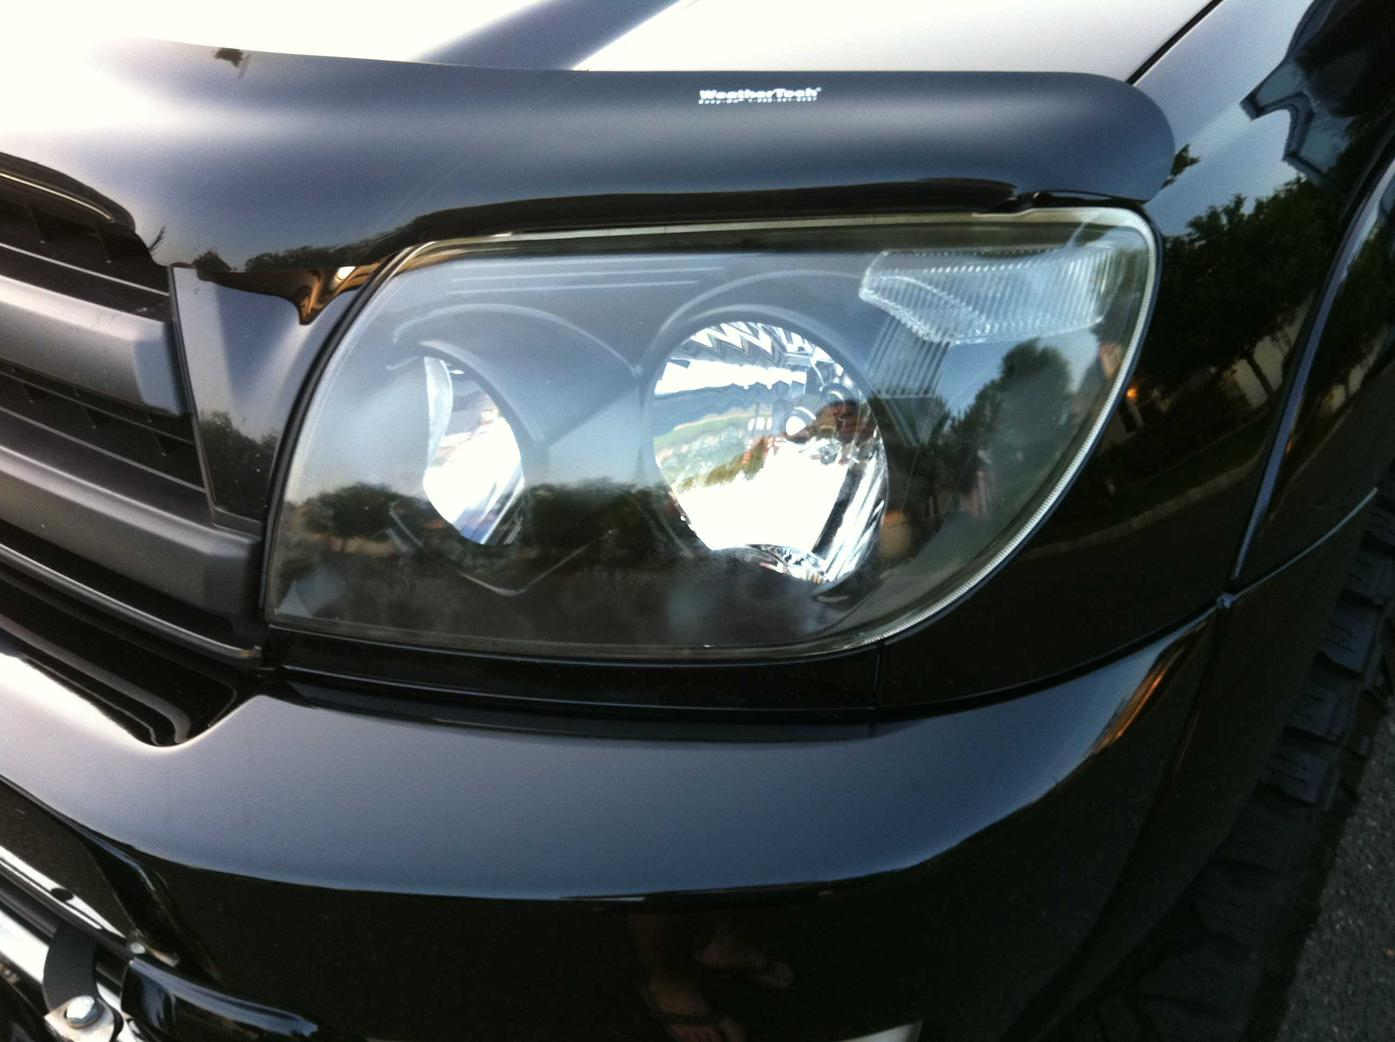 Blacked Out Oem Headlights For Sale 03 05 Toyota